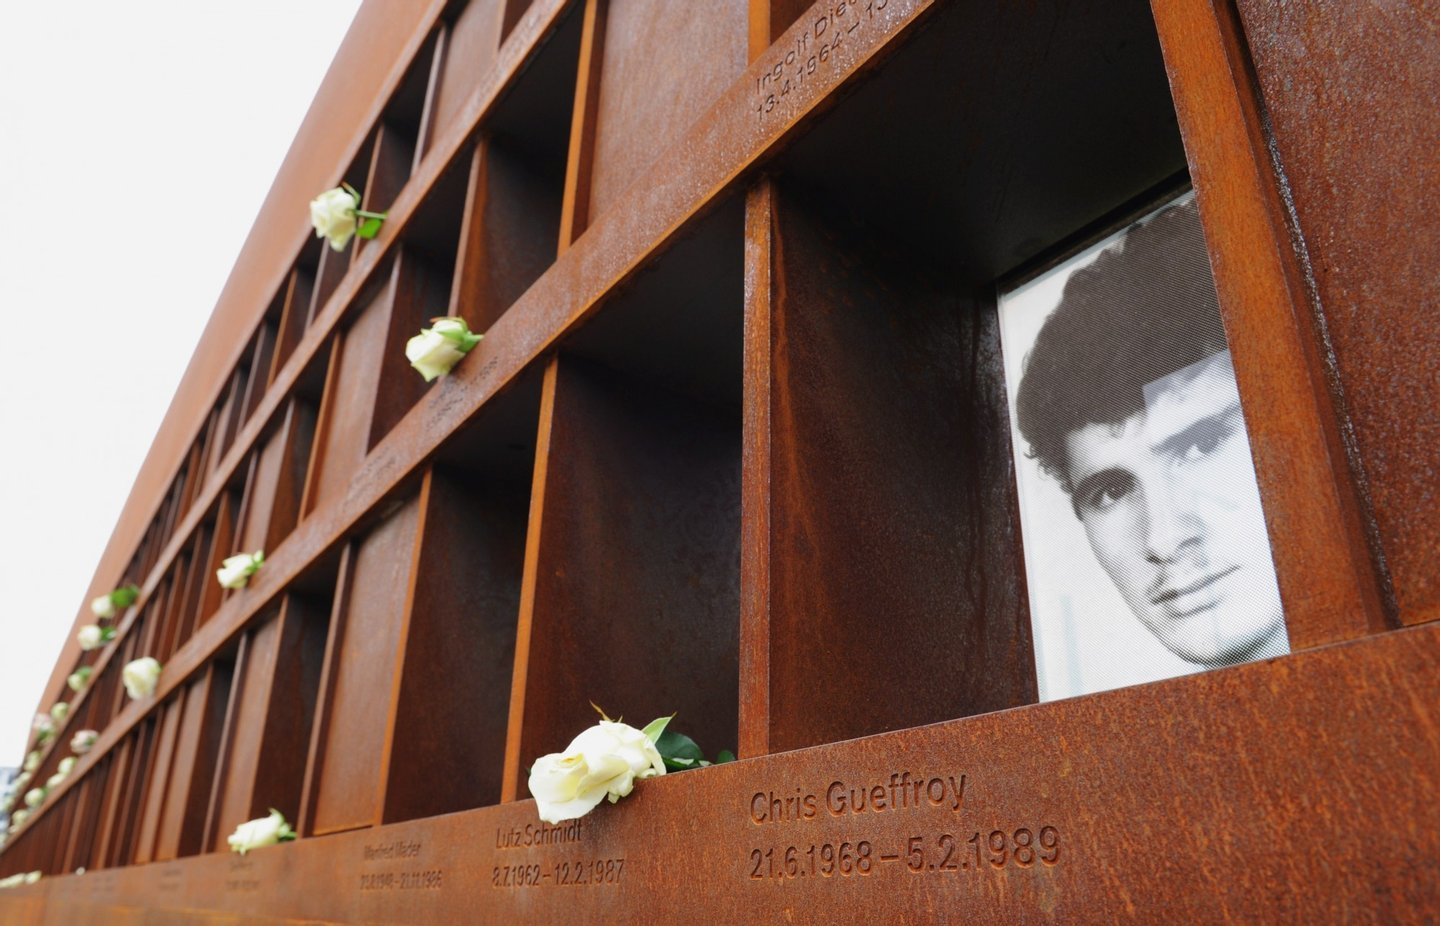 The picture of Chris Gueffroy, last victim killed by weapons, can be seen at the memorial site at Bernauer Strasse in Berlin August 13, 2010. Berlin marks the 49th anniversary of the construction of the Berlin Wall on August 13, 2010. AFP PHOTO / JOHANNES EISELE (Photo credit should read JOHANNES EISELE/AFP/Getty Images)